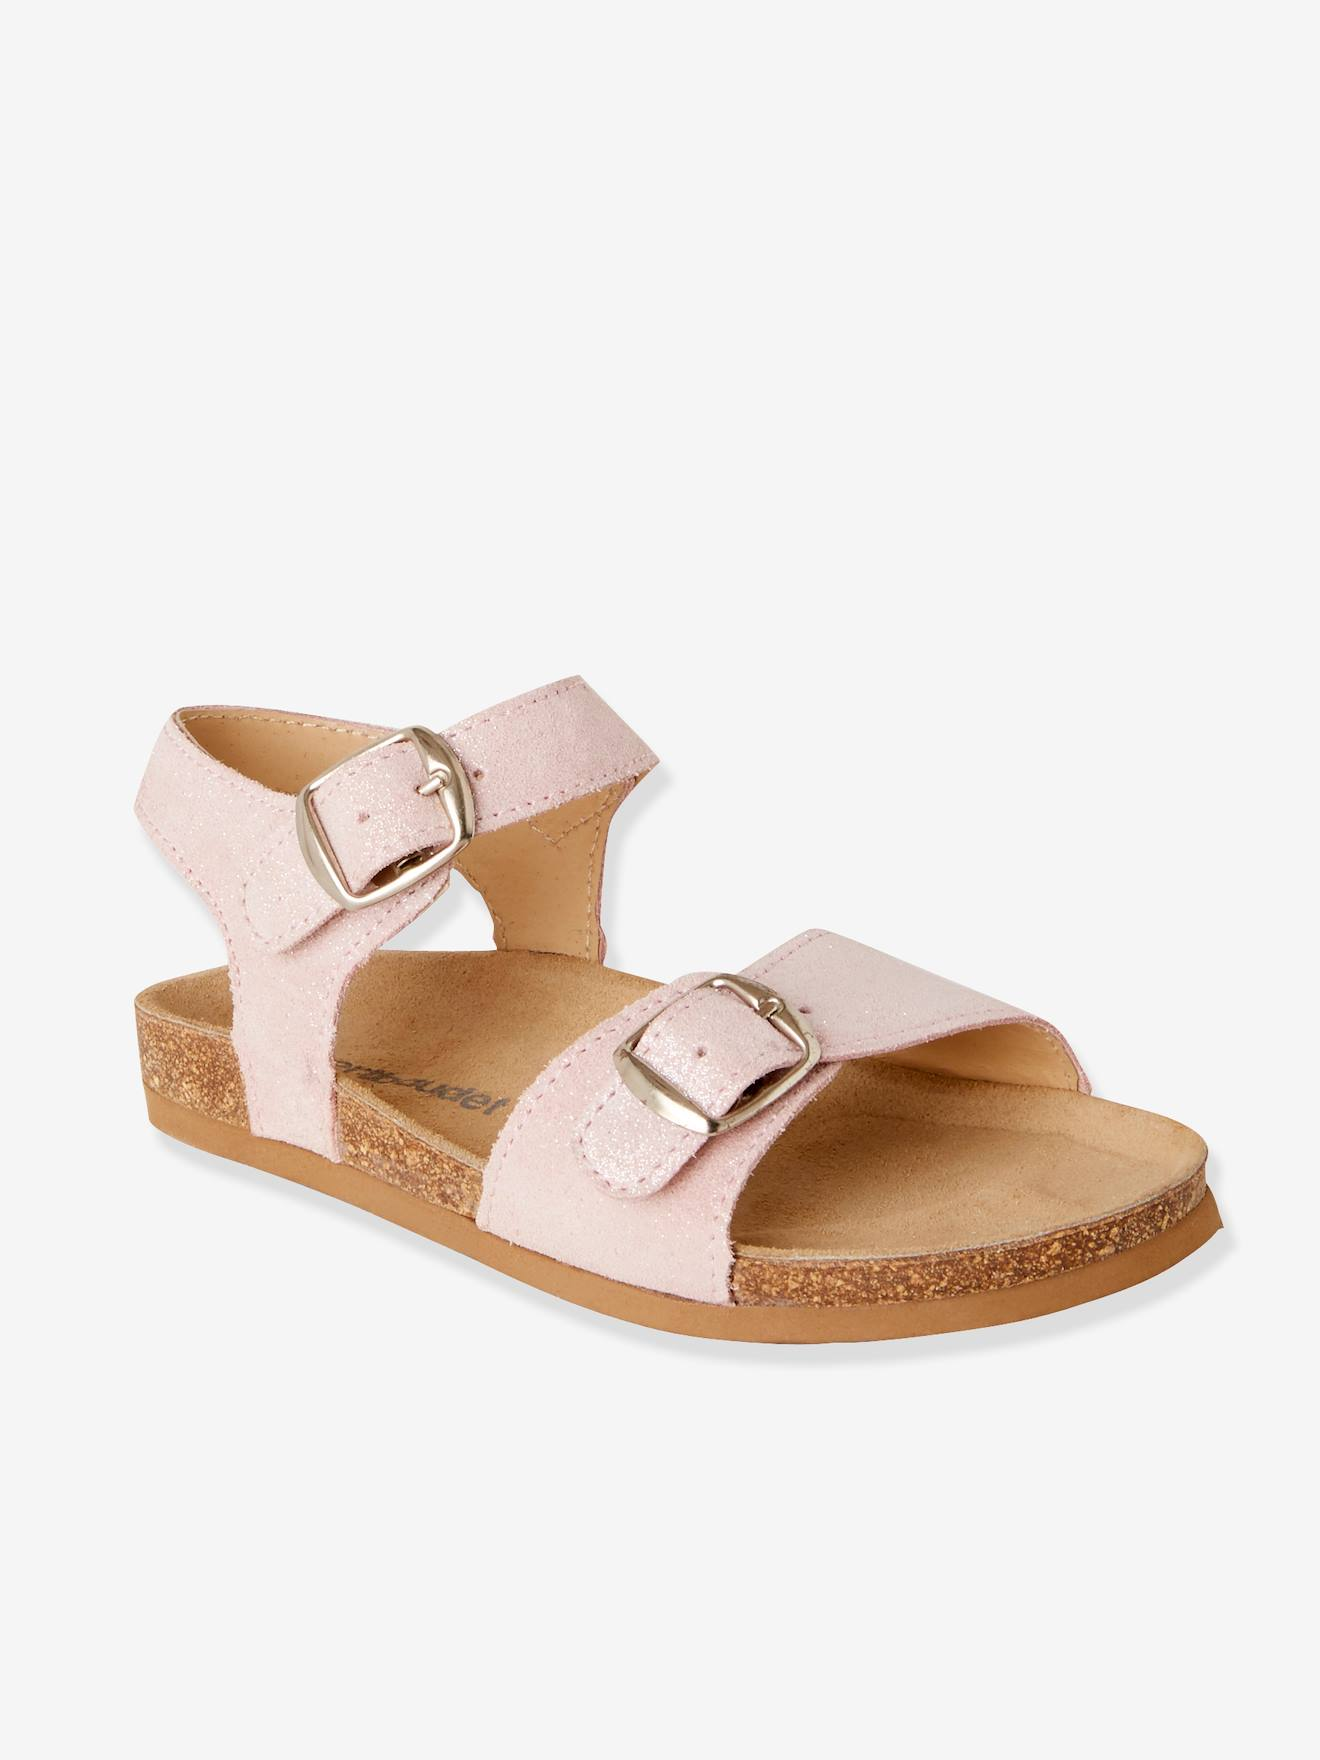 682d18b2c0e0 Anatomic Leather Sandals for Girls - pink light solid